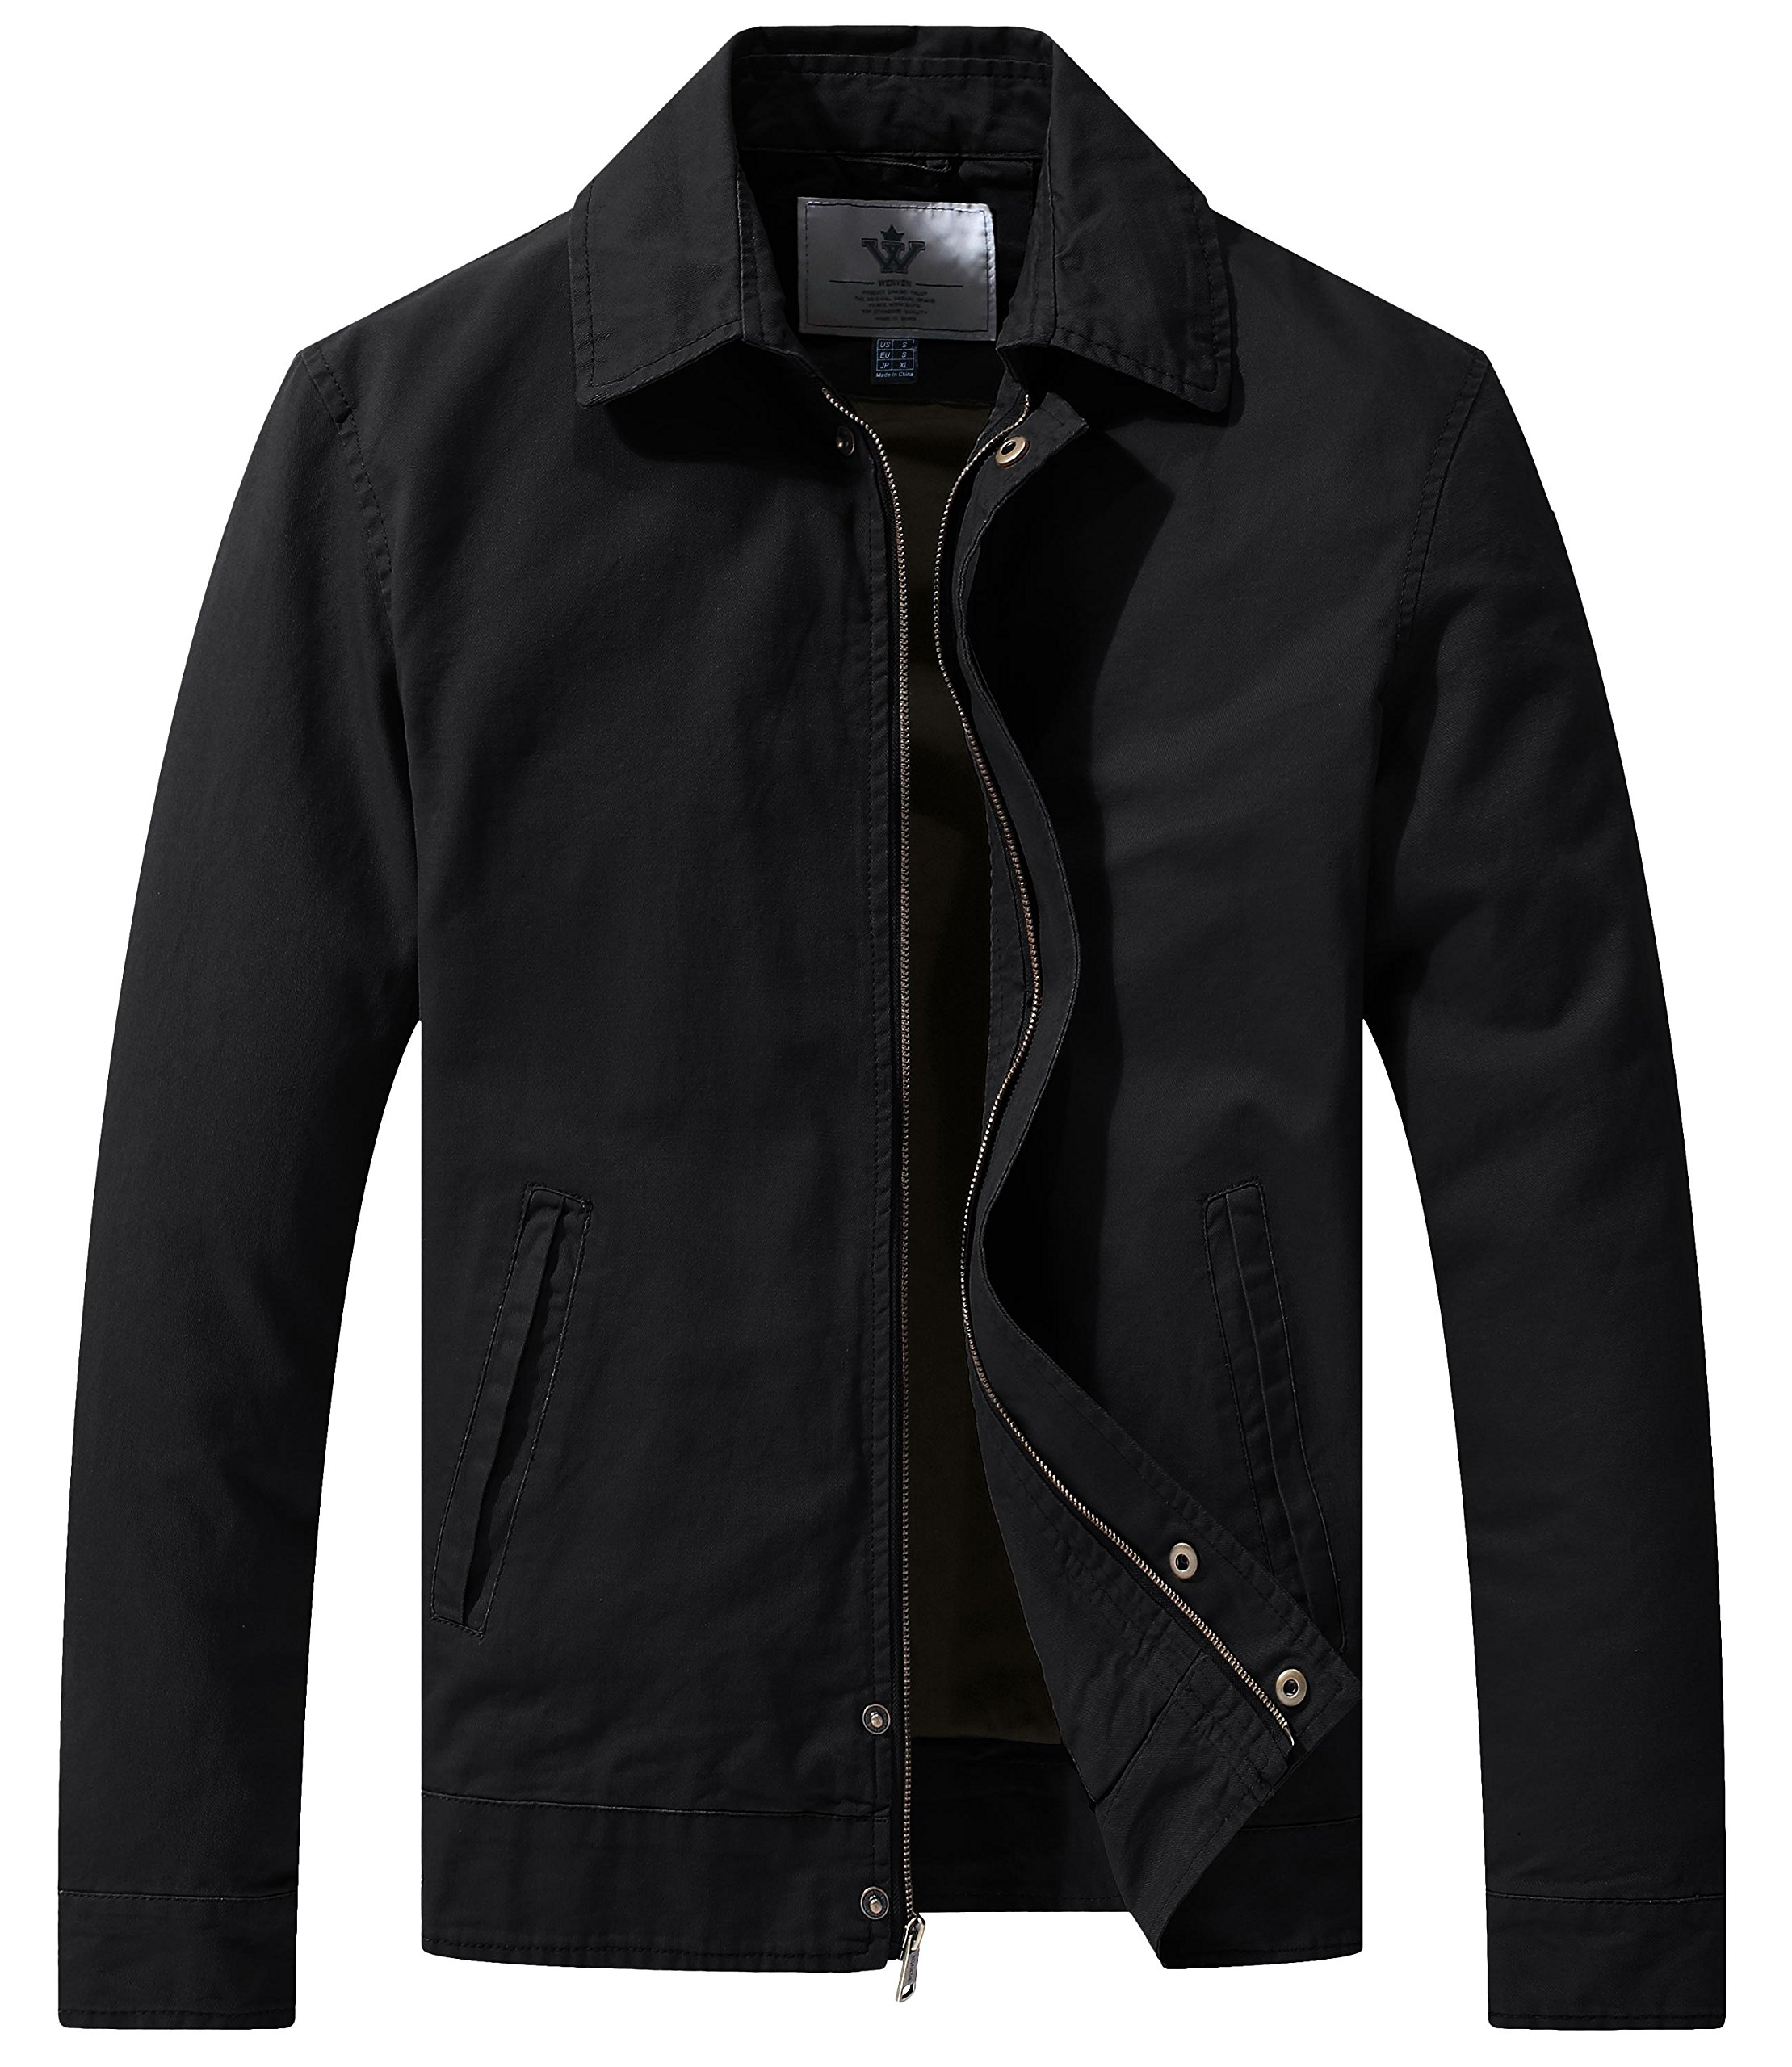 WenVen Men's Casual Long Sleeve Full Zip Jacket with Pockets(Black,Large) by WenVen